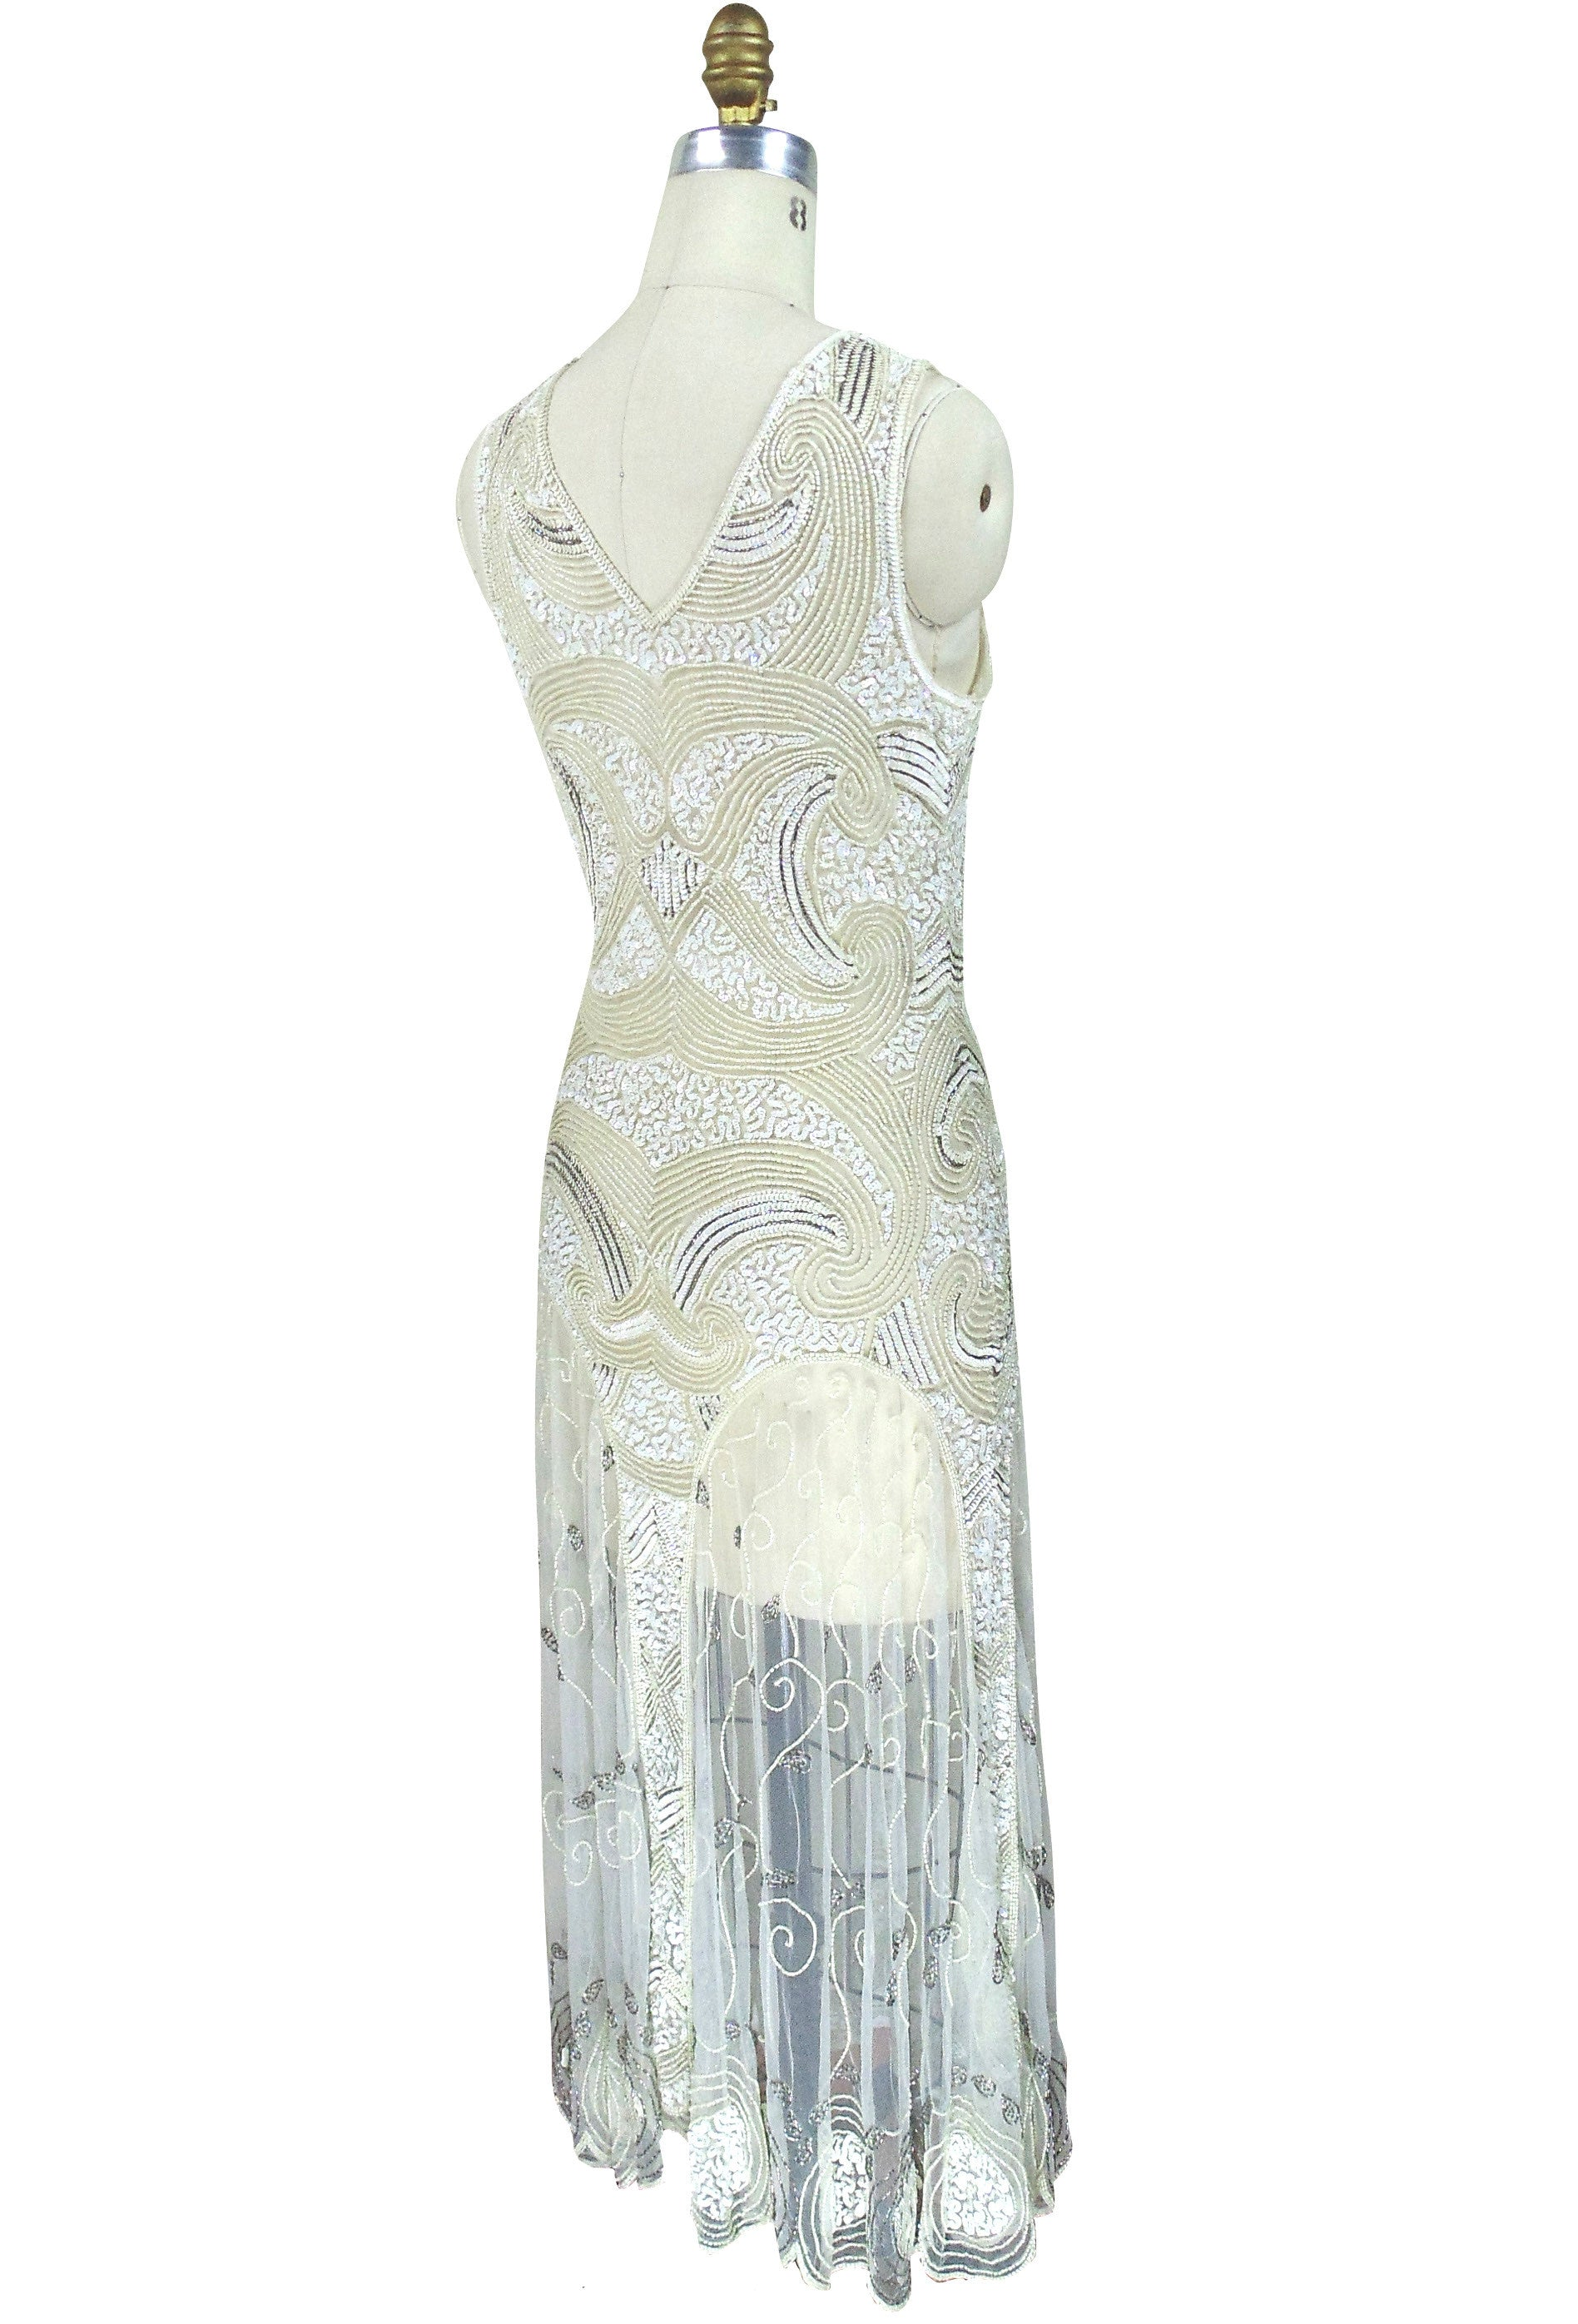 Charming ... Art Deco Vintage Reproduction 1920u0027s Gown   The Cosmos   Ivory   The Deco  Haus